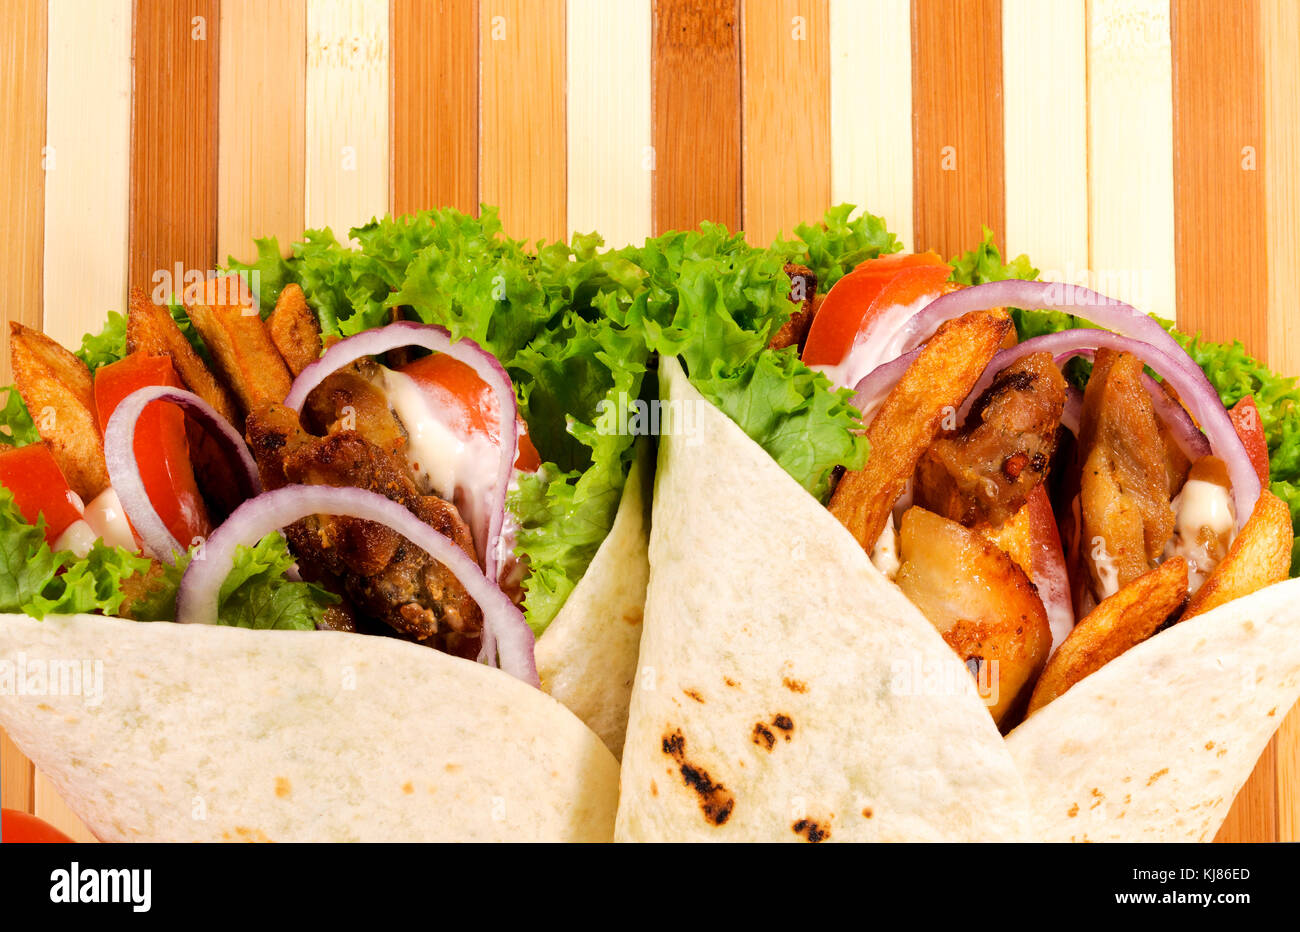 Pair of gyros pita on the wooden background - Stock Image